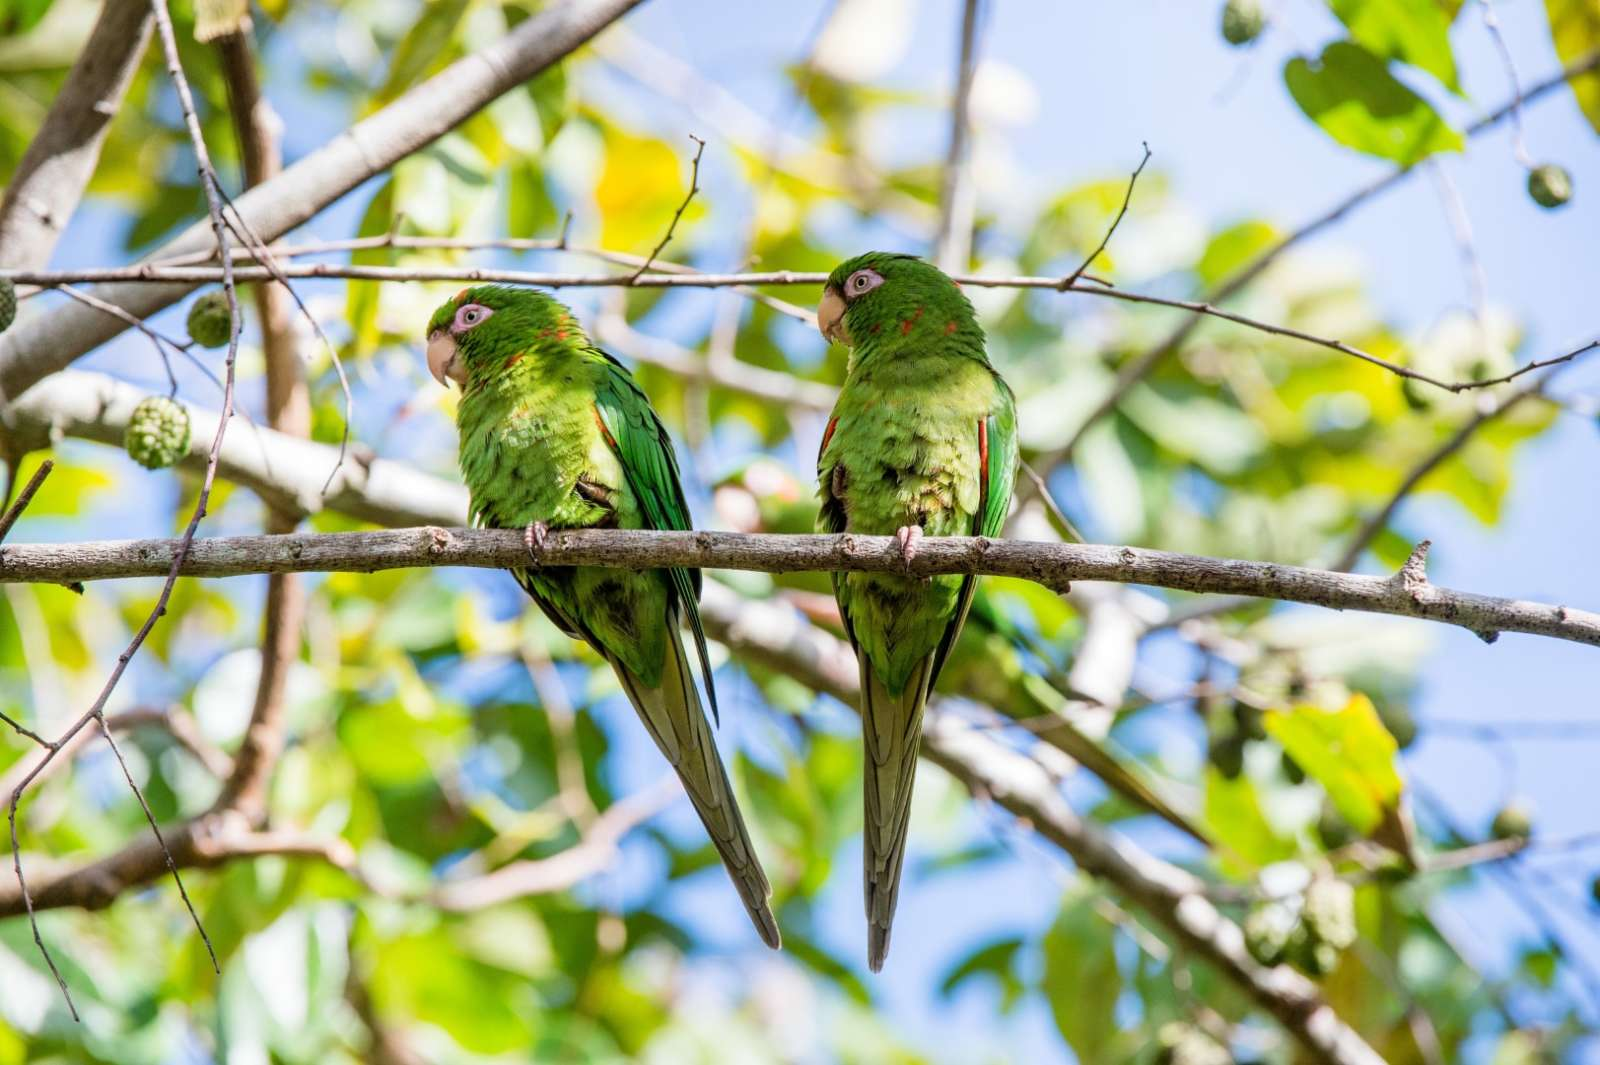 Cuban Parakeets in the Zapata Peninsula